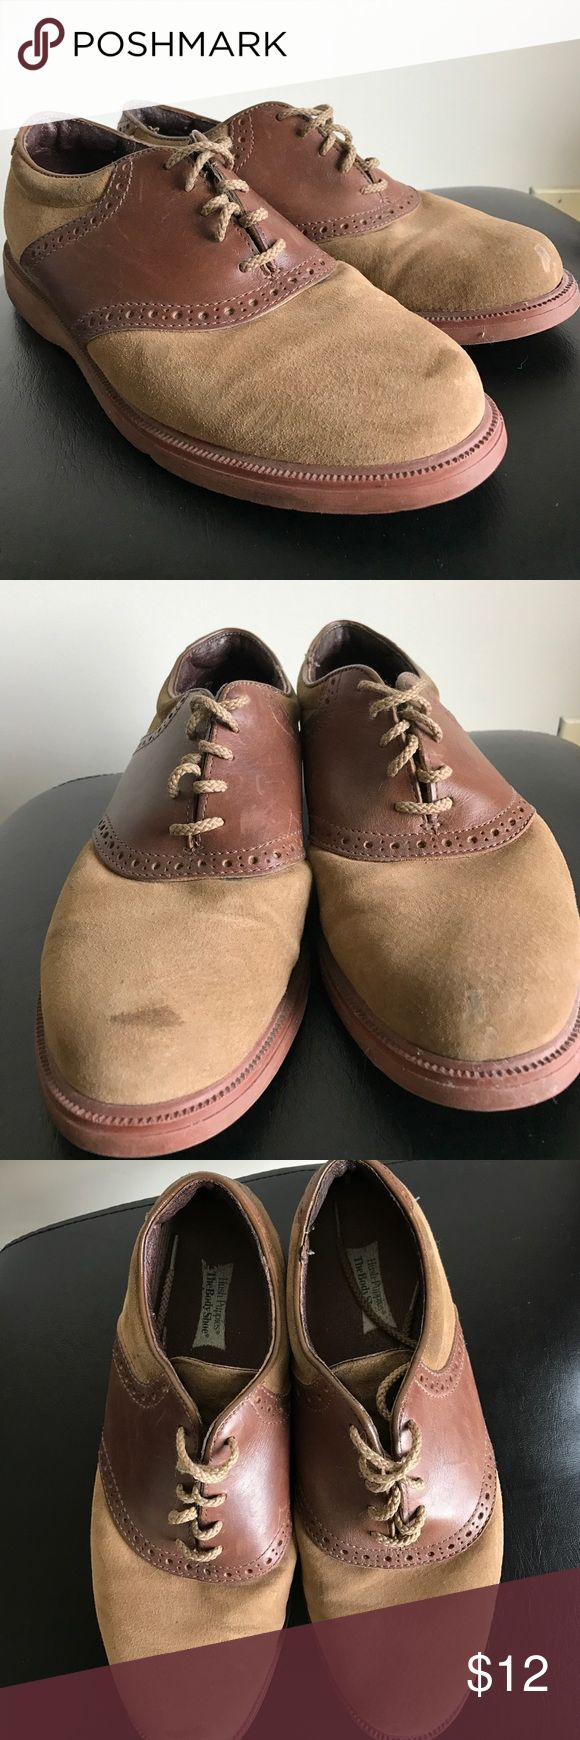 Vintage Hush Puppies Oxford Shoes Well worn, wear shown in pictures. Fun vintage shoes! Hush Puppies Shoes Oxfords & Derbys